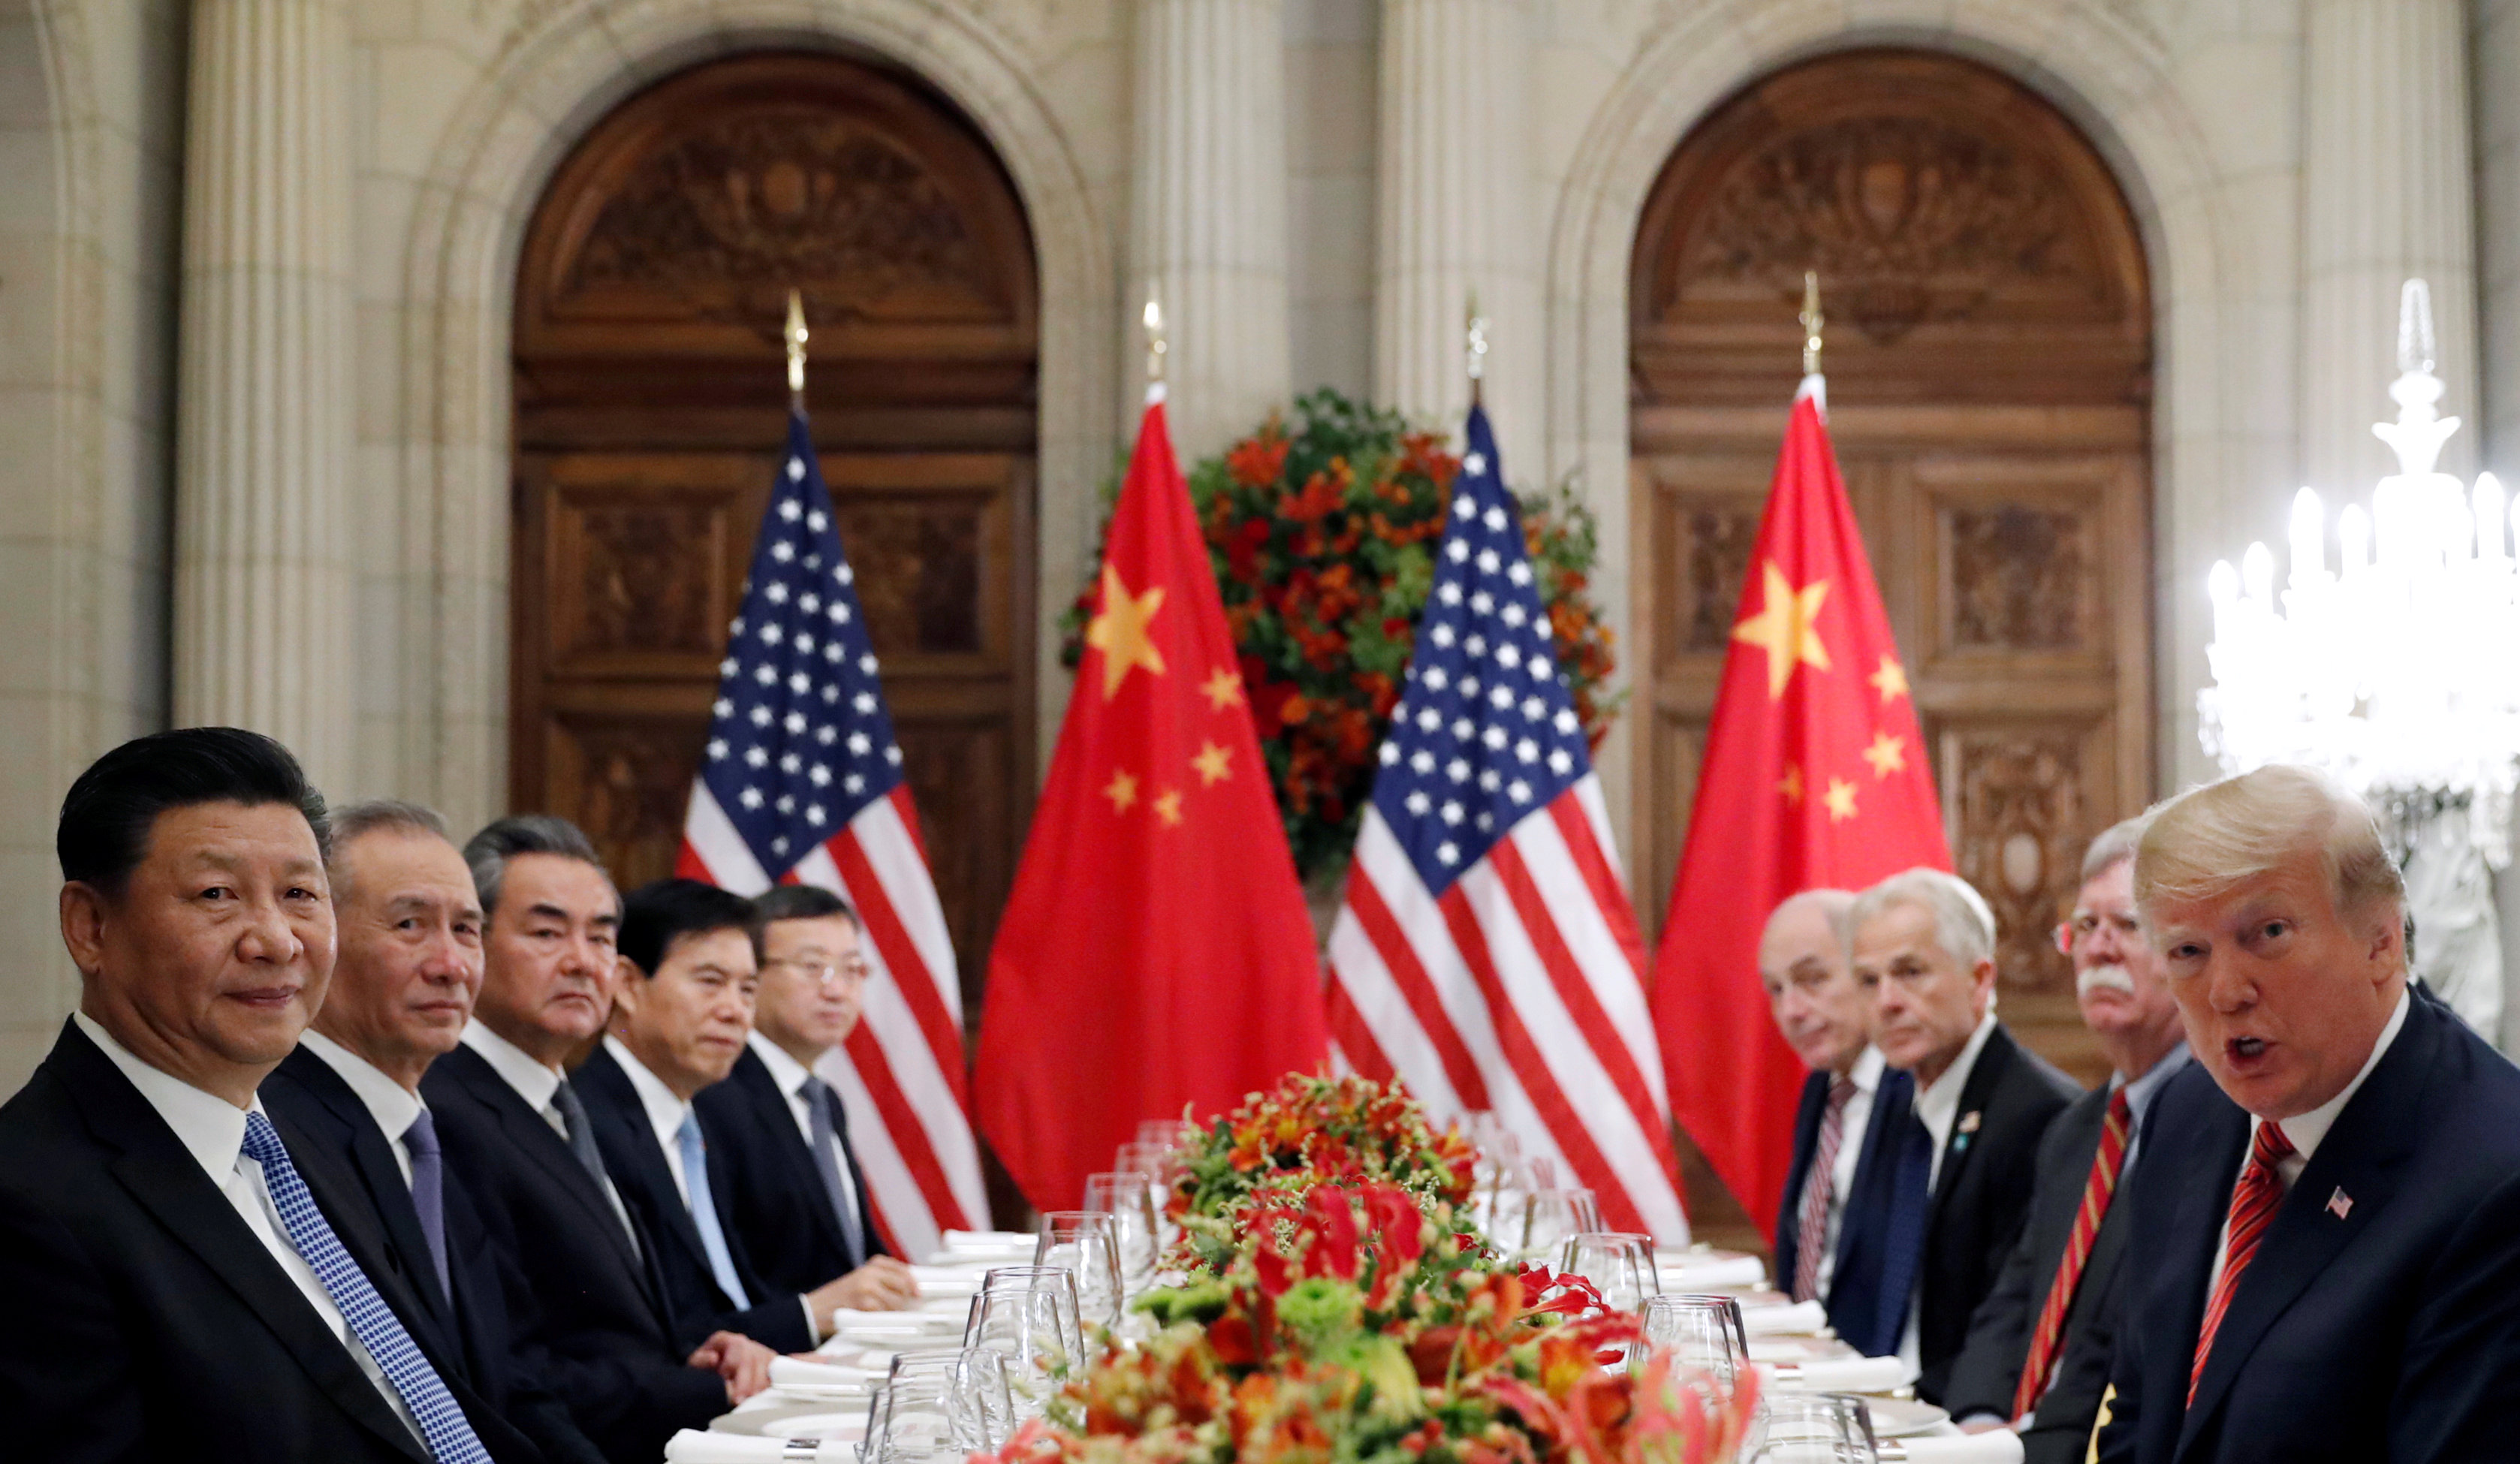 US President Donald Trump and Chinese President Xi Jinping meet to discuss the ongoing trade war...